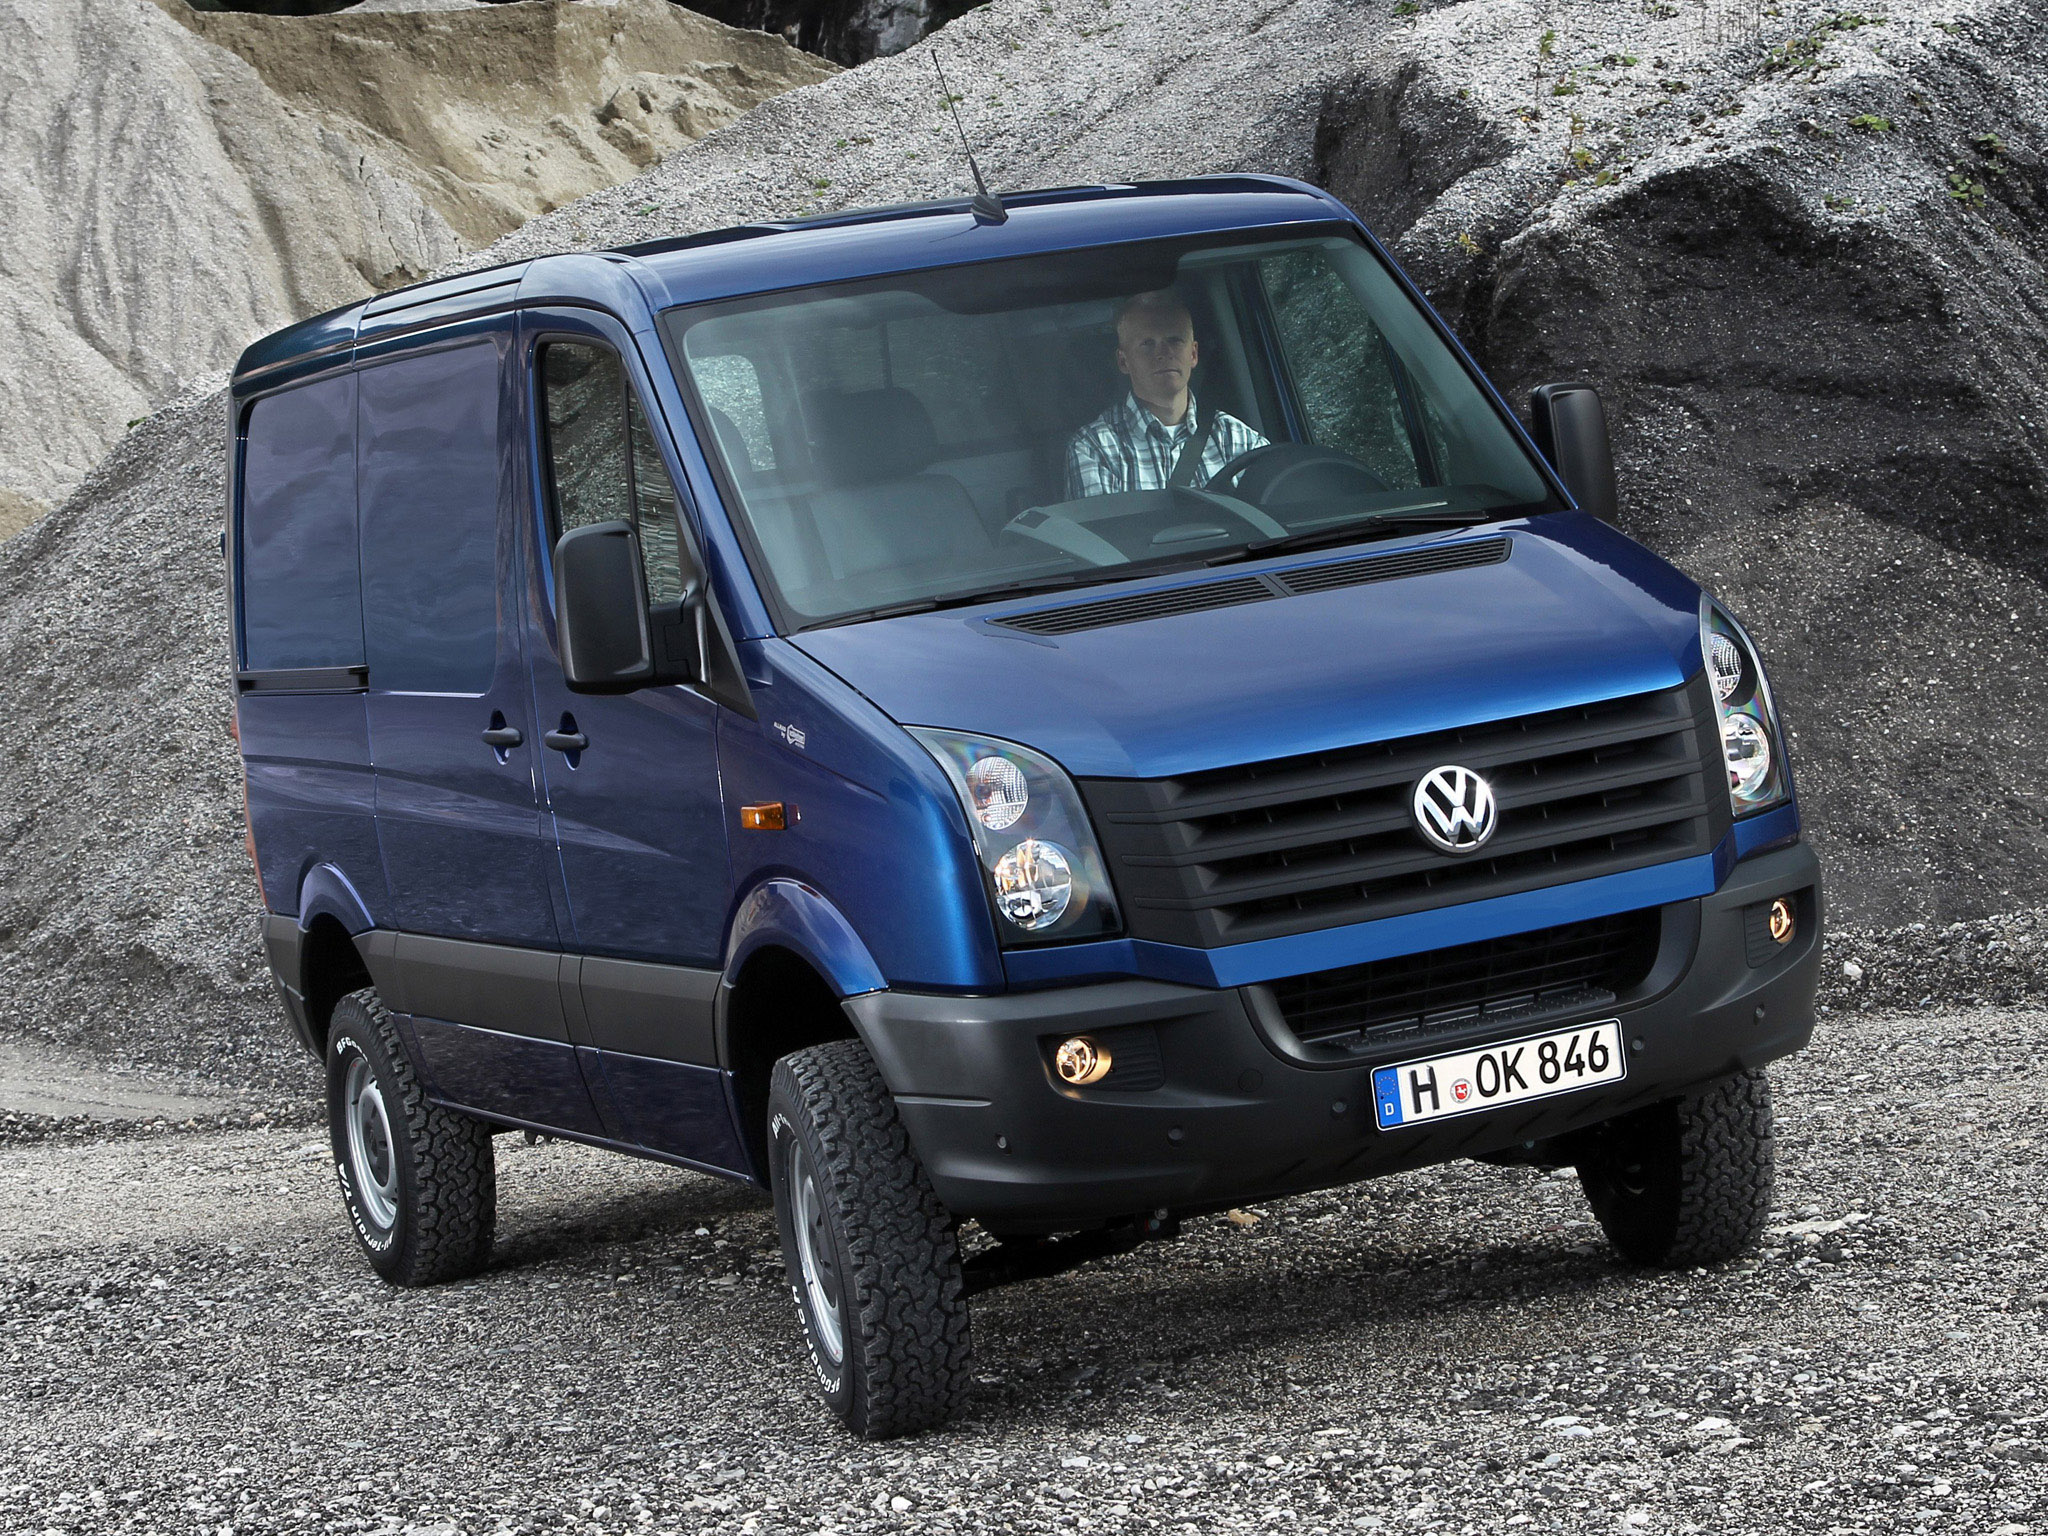 CLASSE V  favor incluir Volkswagen-Crafter-Van-4MOTION-by-Achleitner-2011-Photo-02